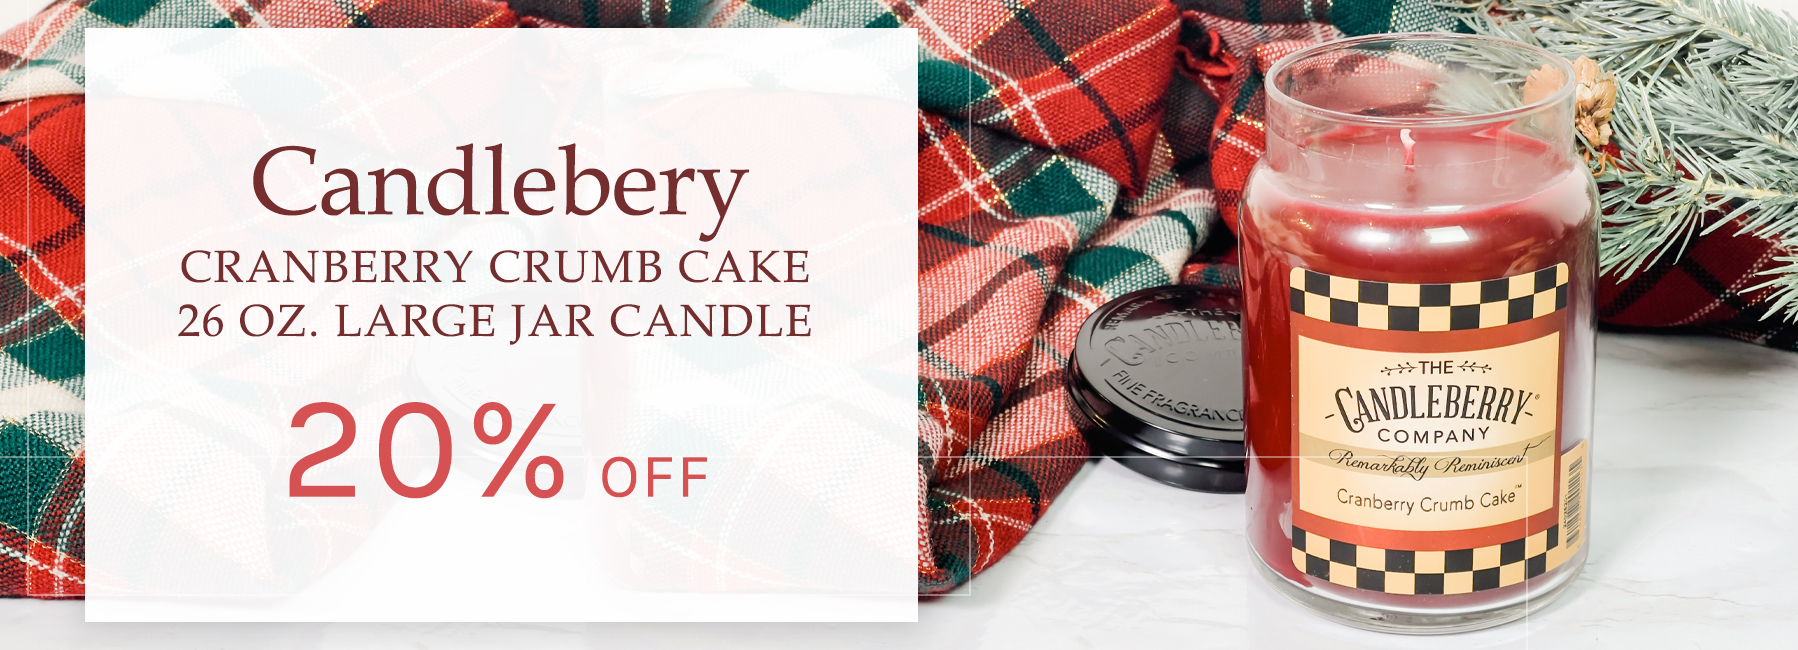 Candleberry - Craberry Crumb Cake 26 oz. Large Jar Candle - 20 Percent OFF